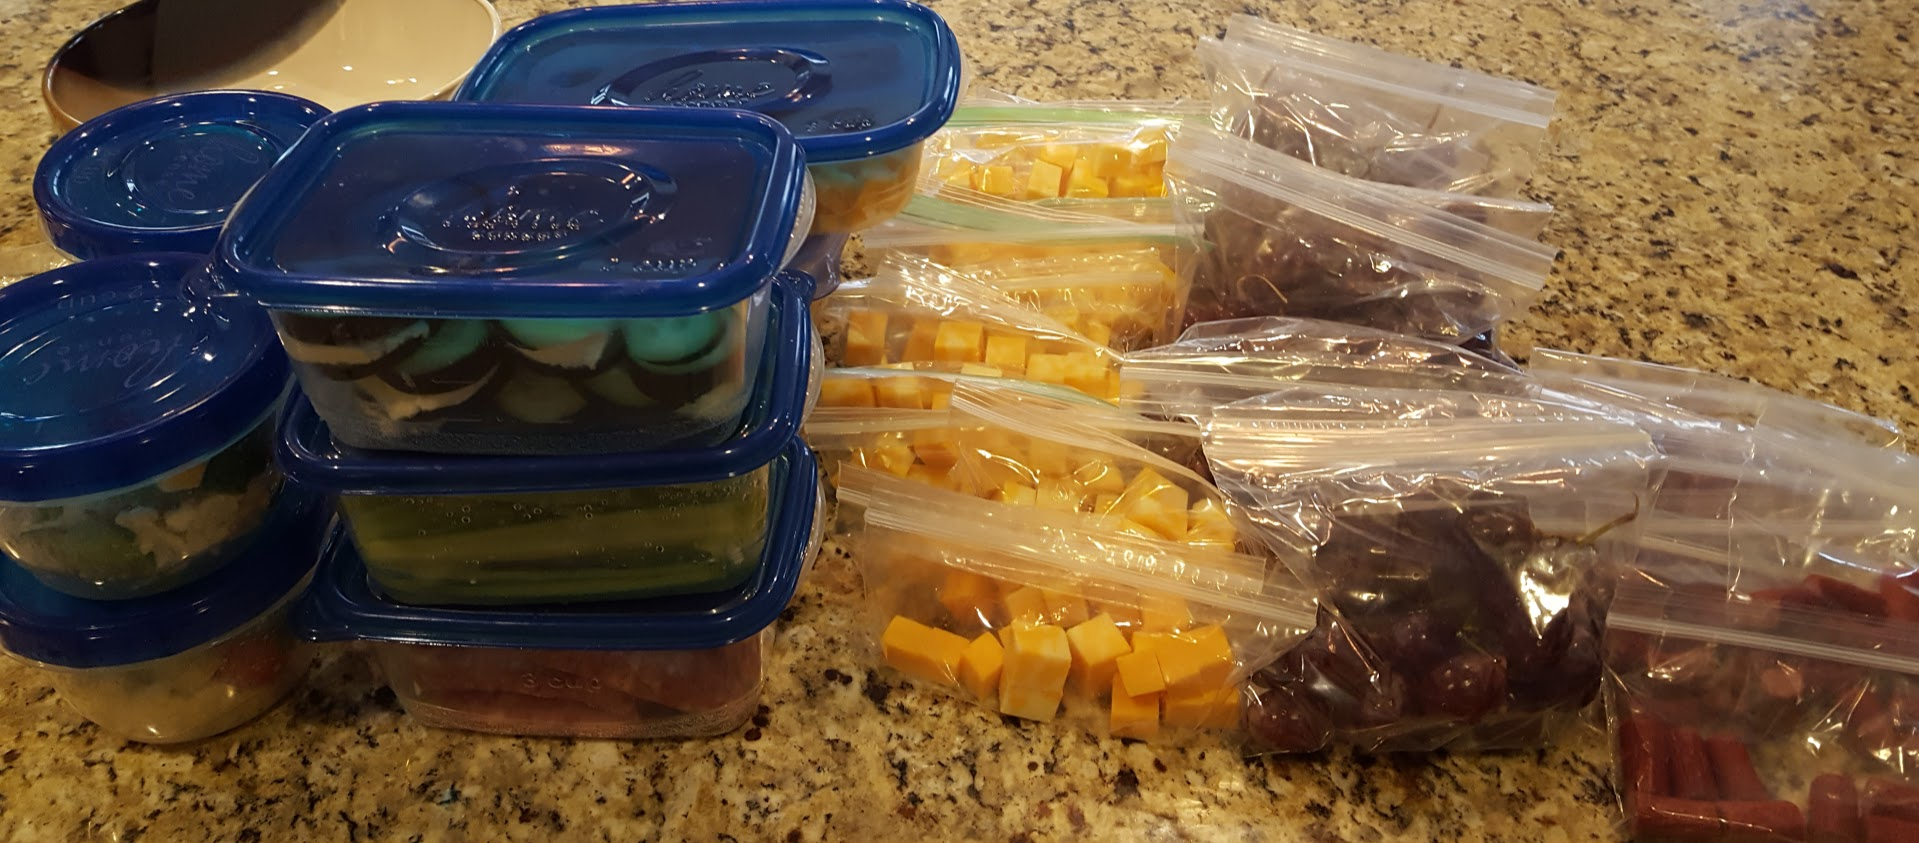 Meal Prepping for Keto